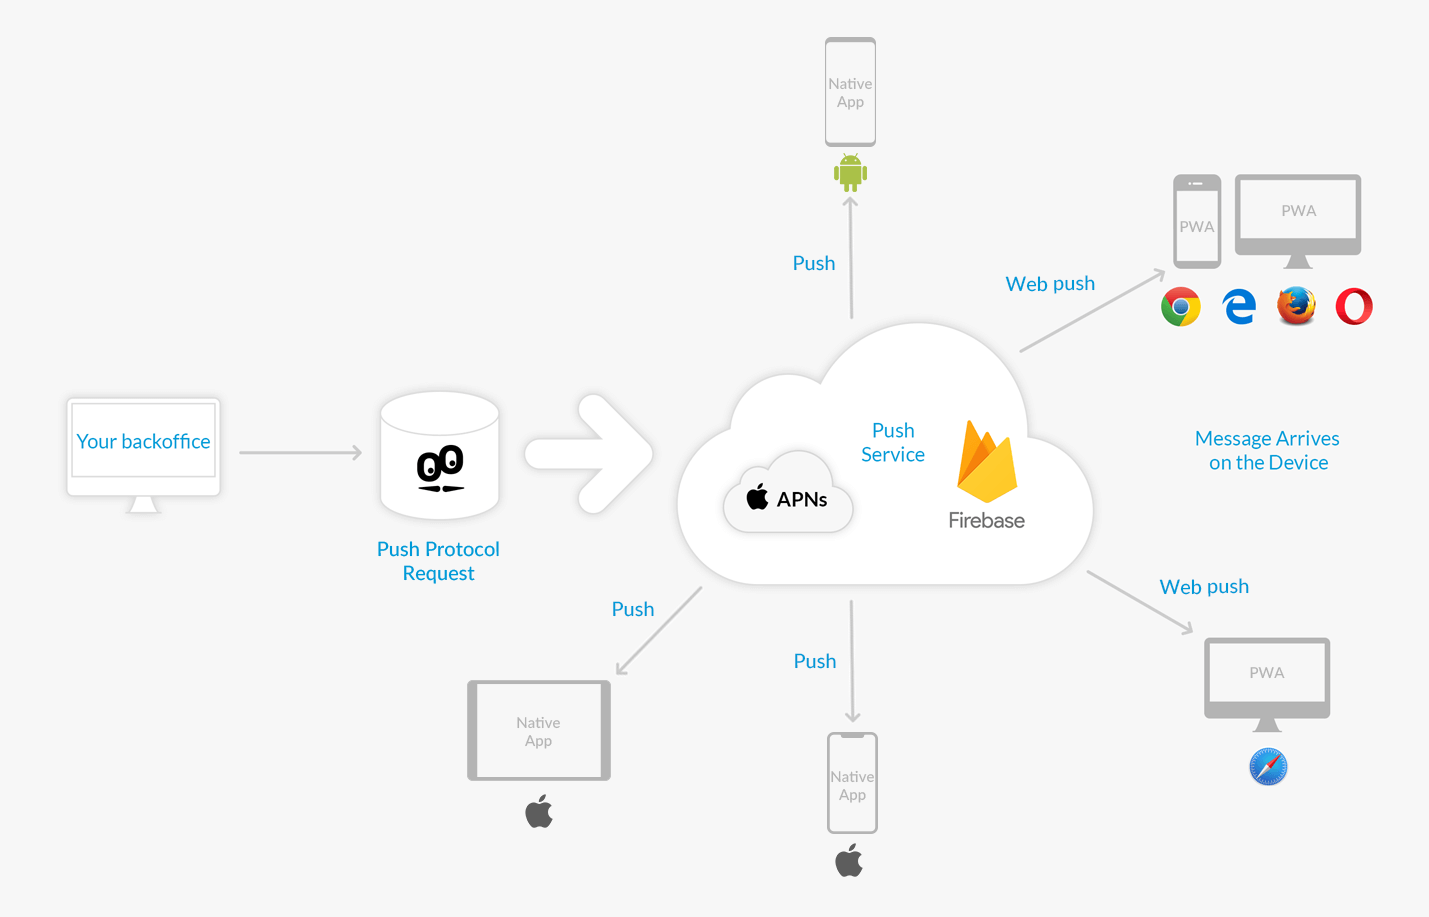 Firebase Cloud Messaging : Stay up-to-date for sending push